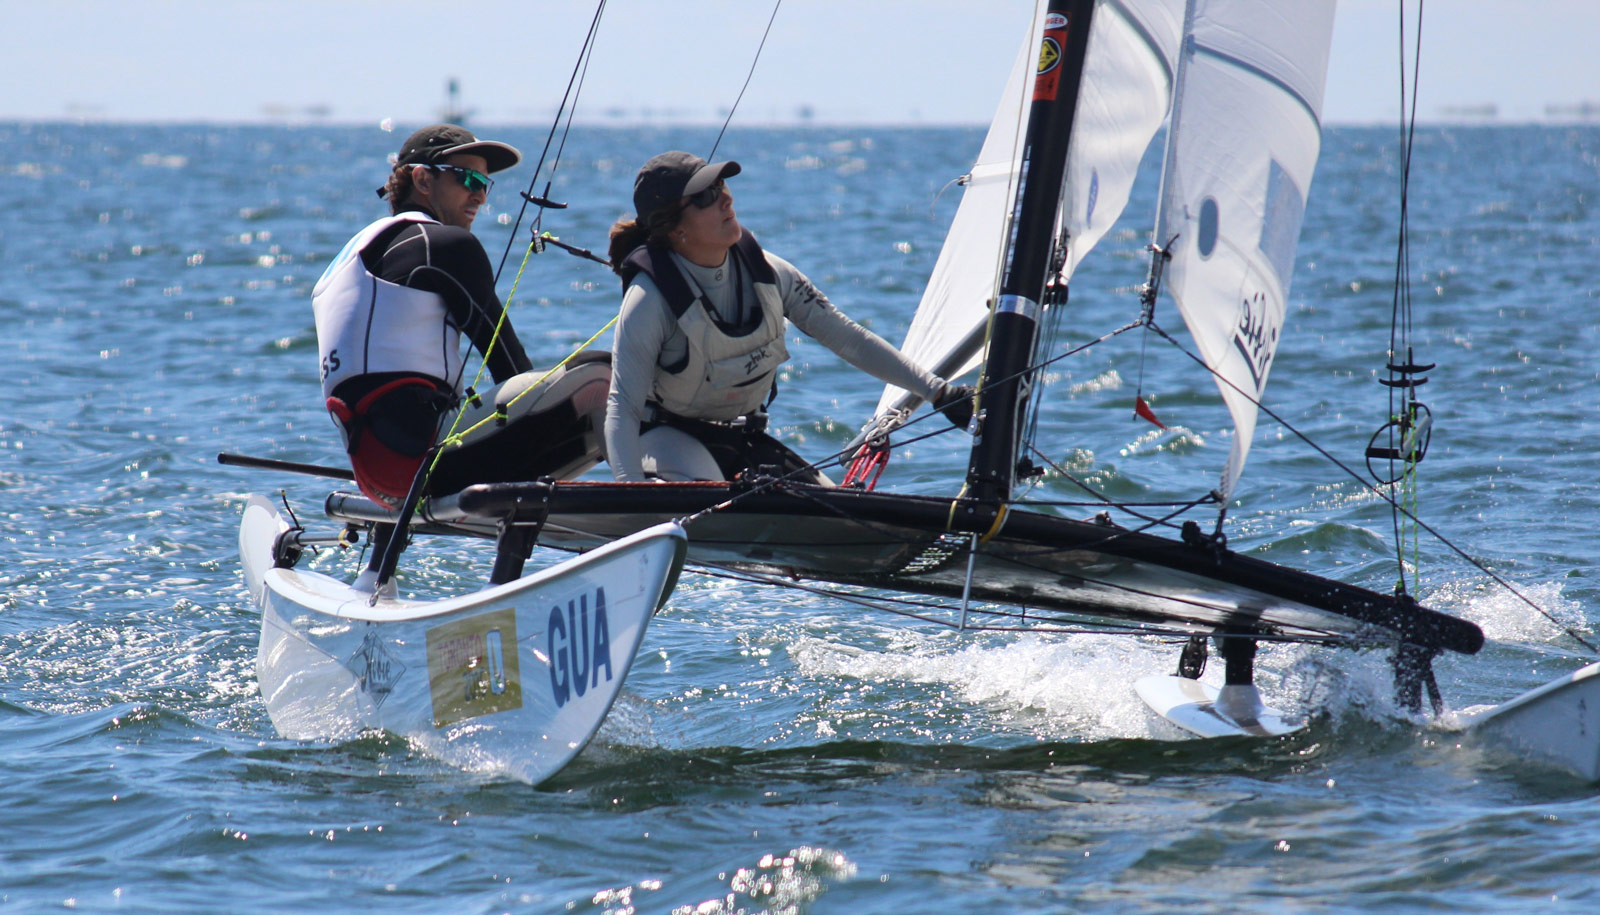 2015 Hobie 16 North American Championships - GUA Champions - Jason Hess and Irene Abascal